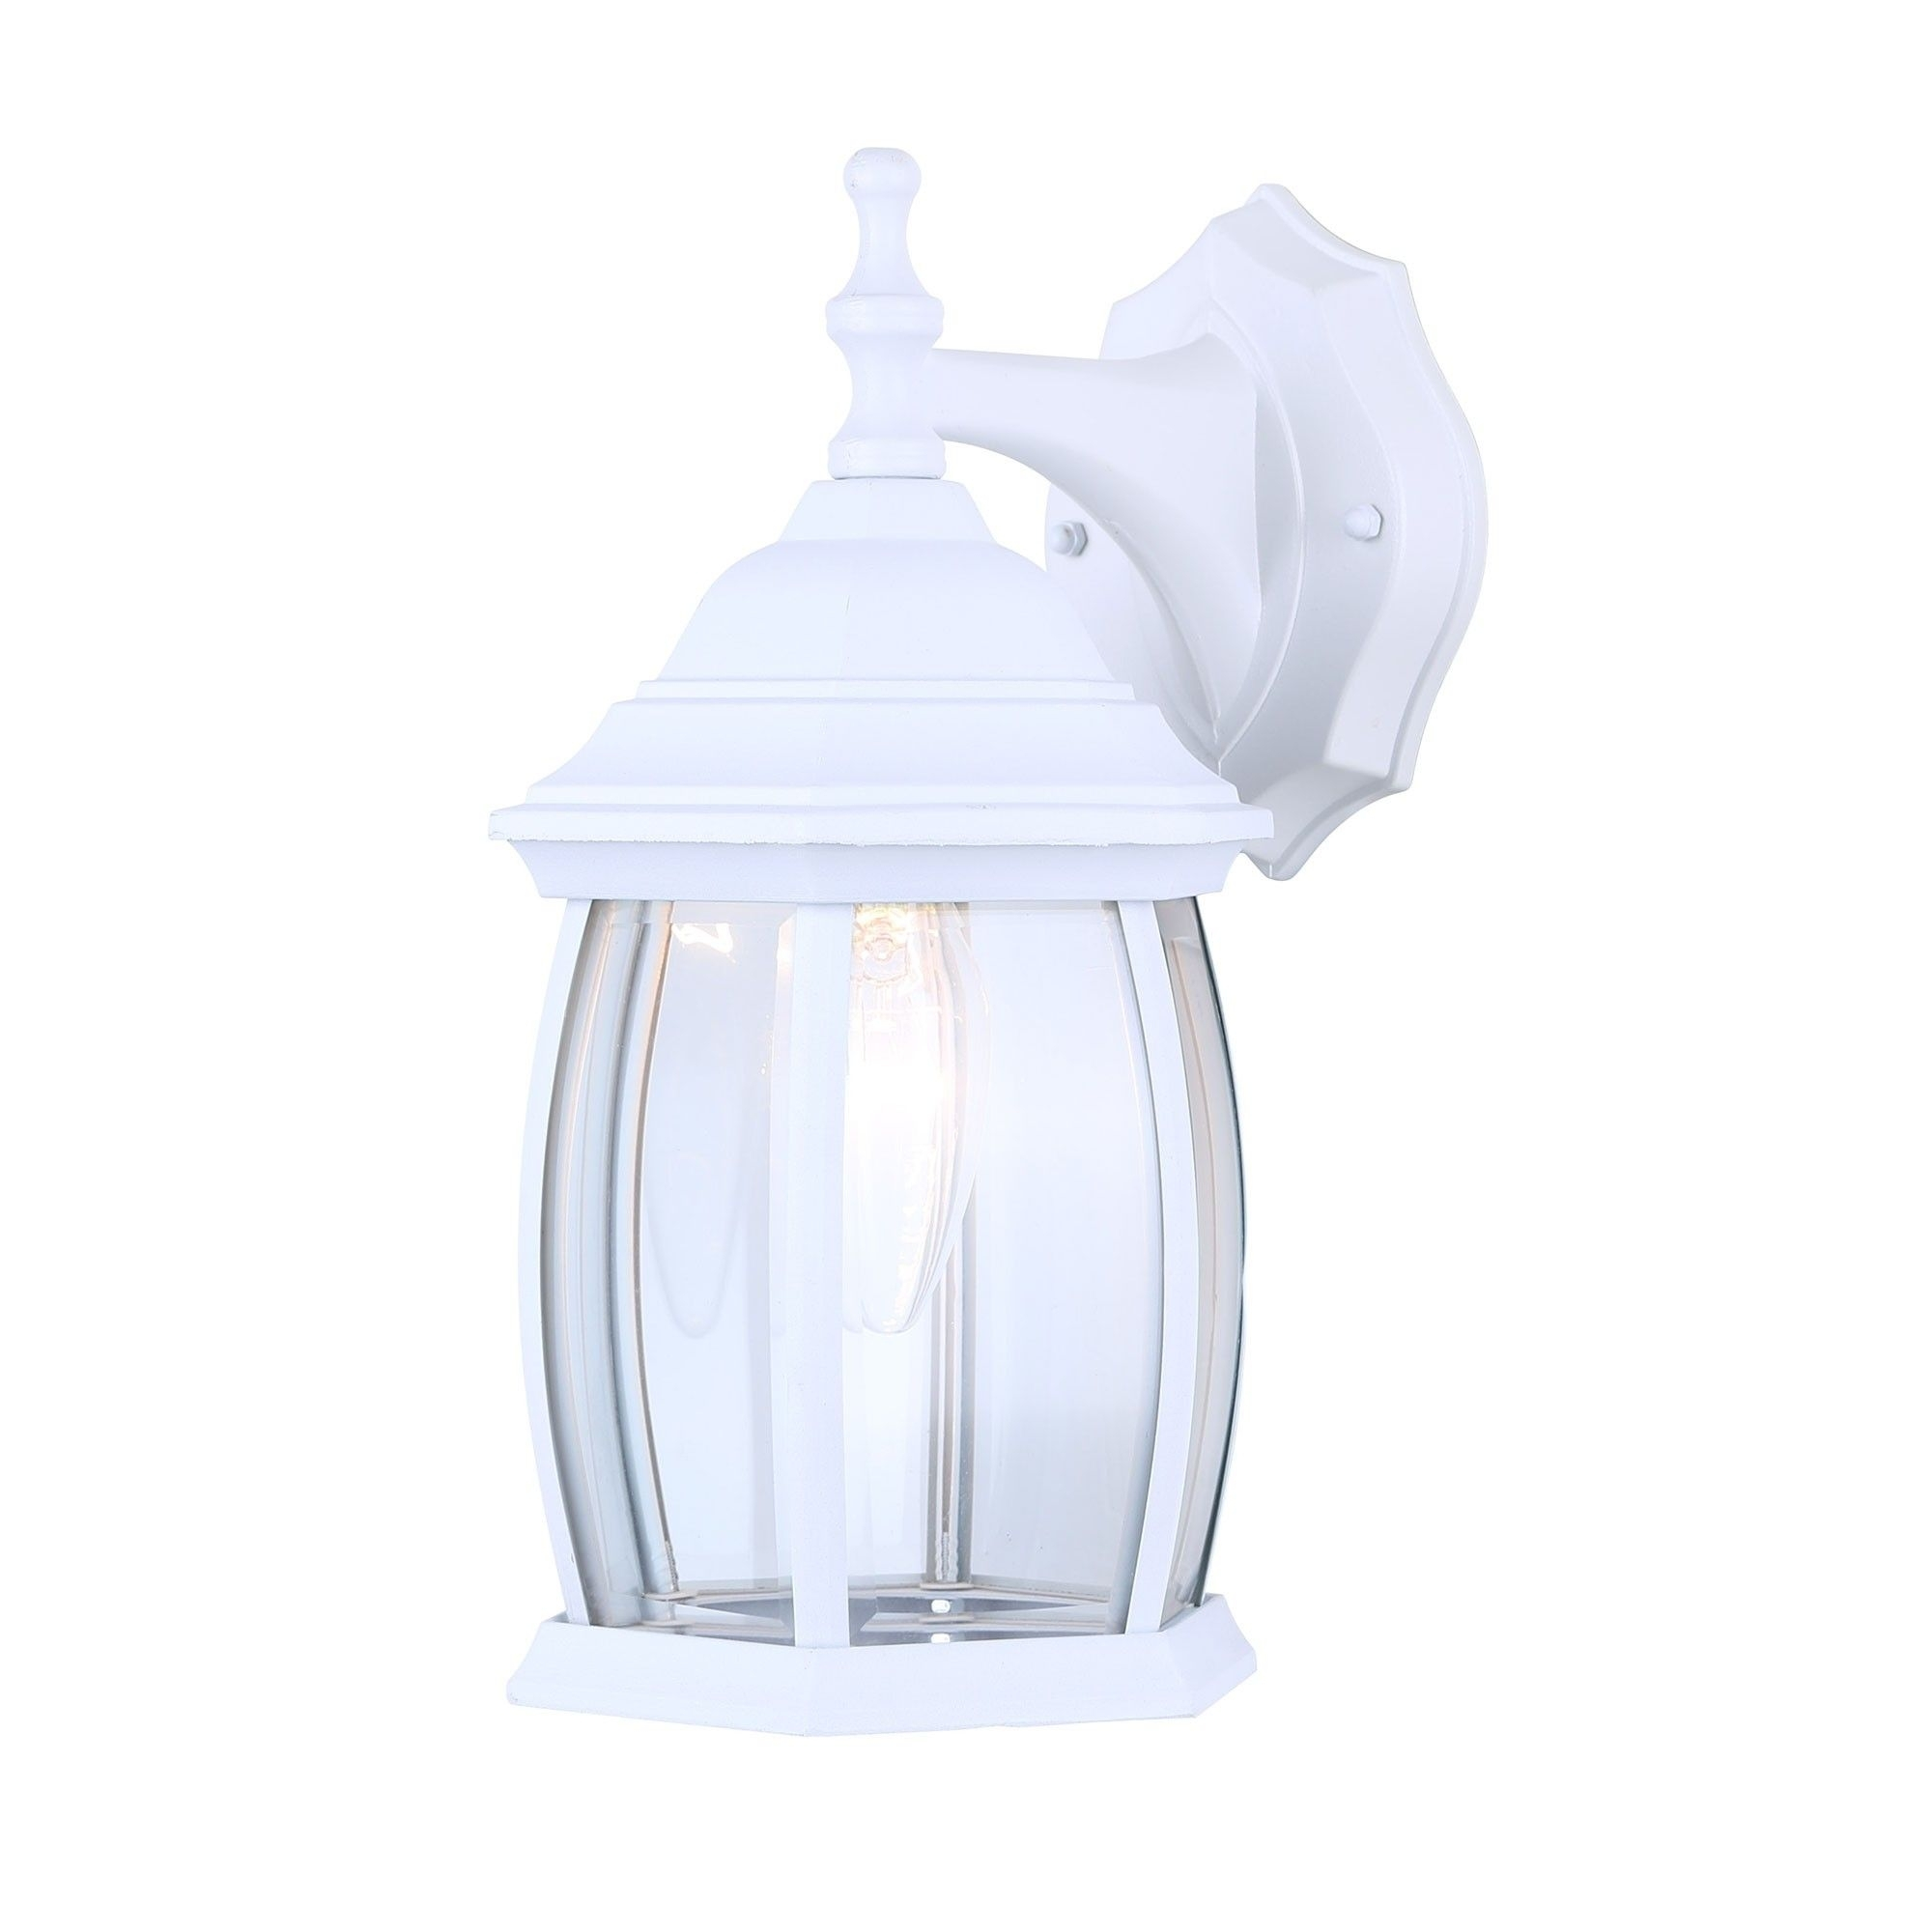 Canarm Iol12wh Exterior Outdoor Light Fixture Lantern Sconce Curved Pertaining To White Outdoor Lanterns (View 12 of 20)